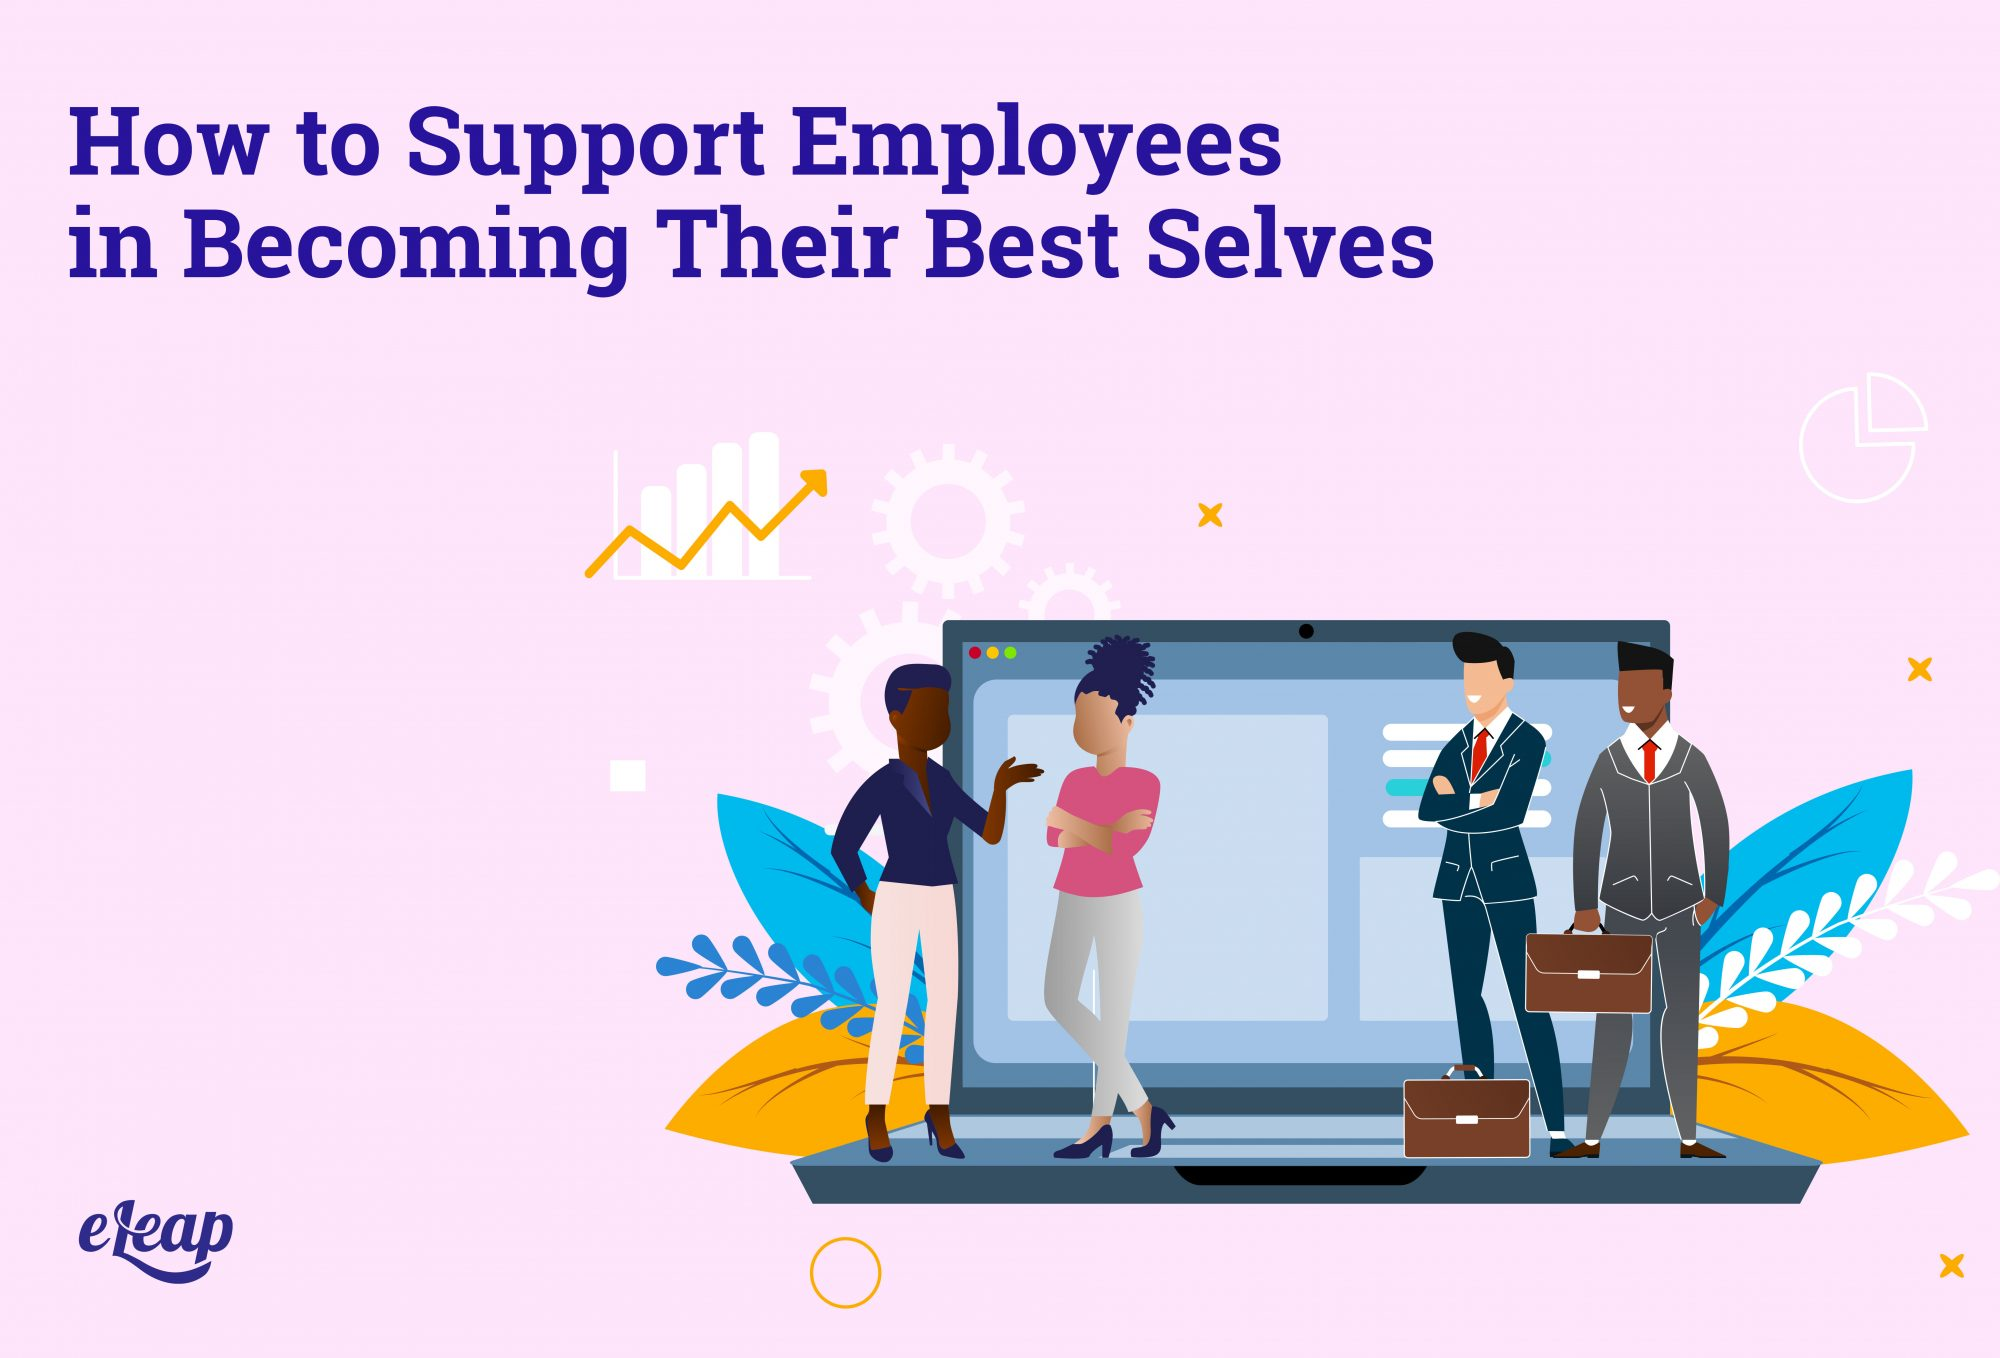 How to Support Employees in Becoming Their Best Selves